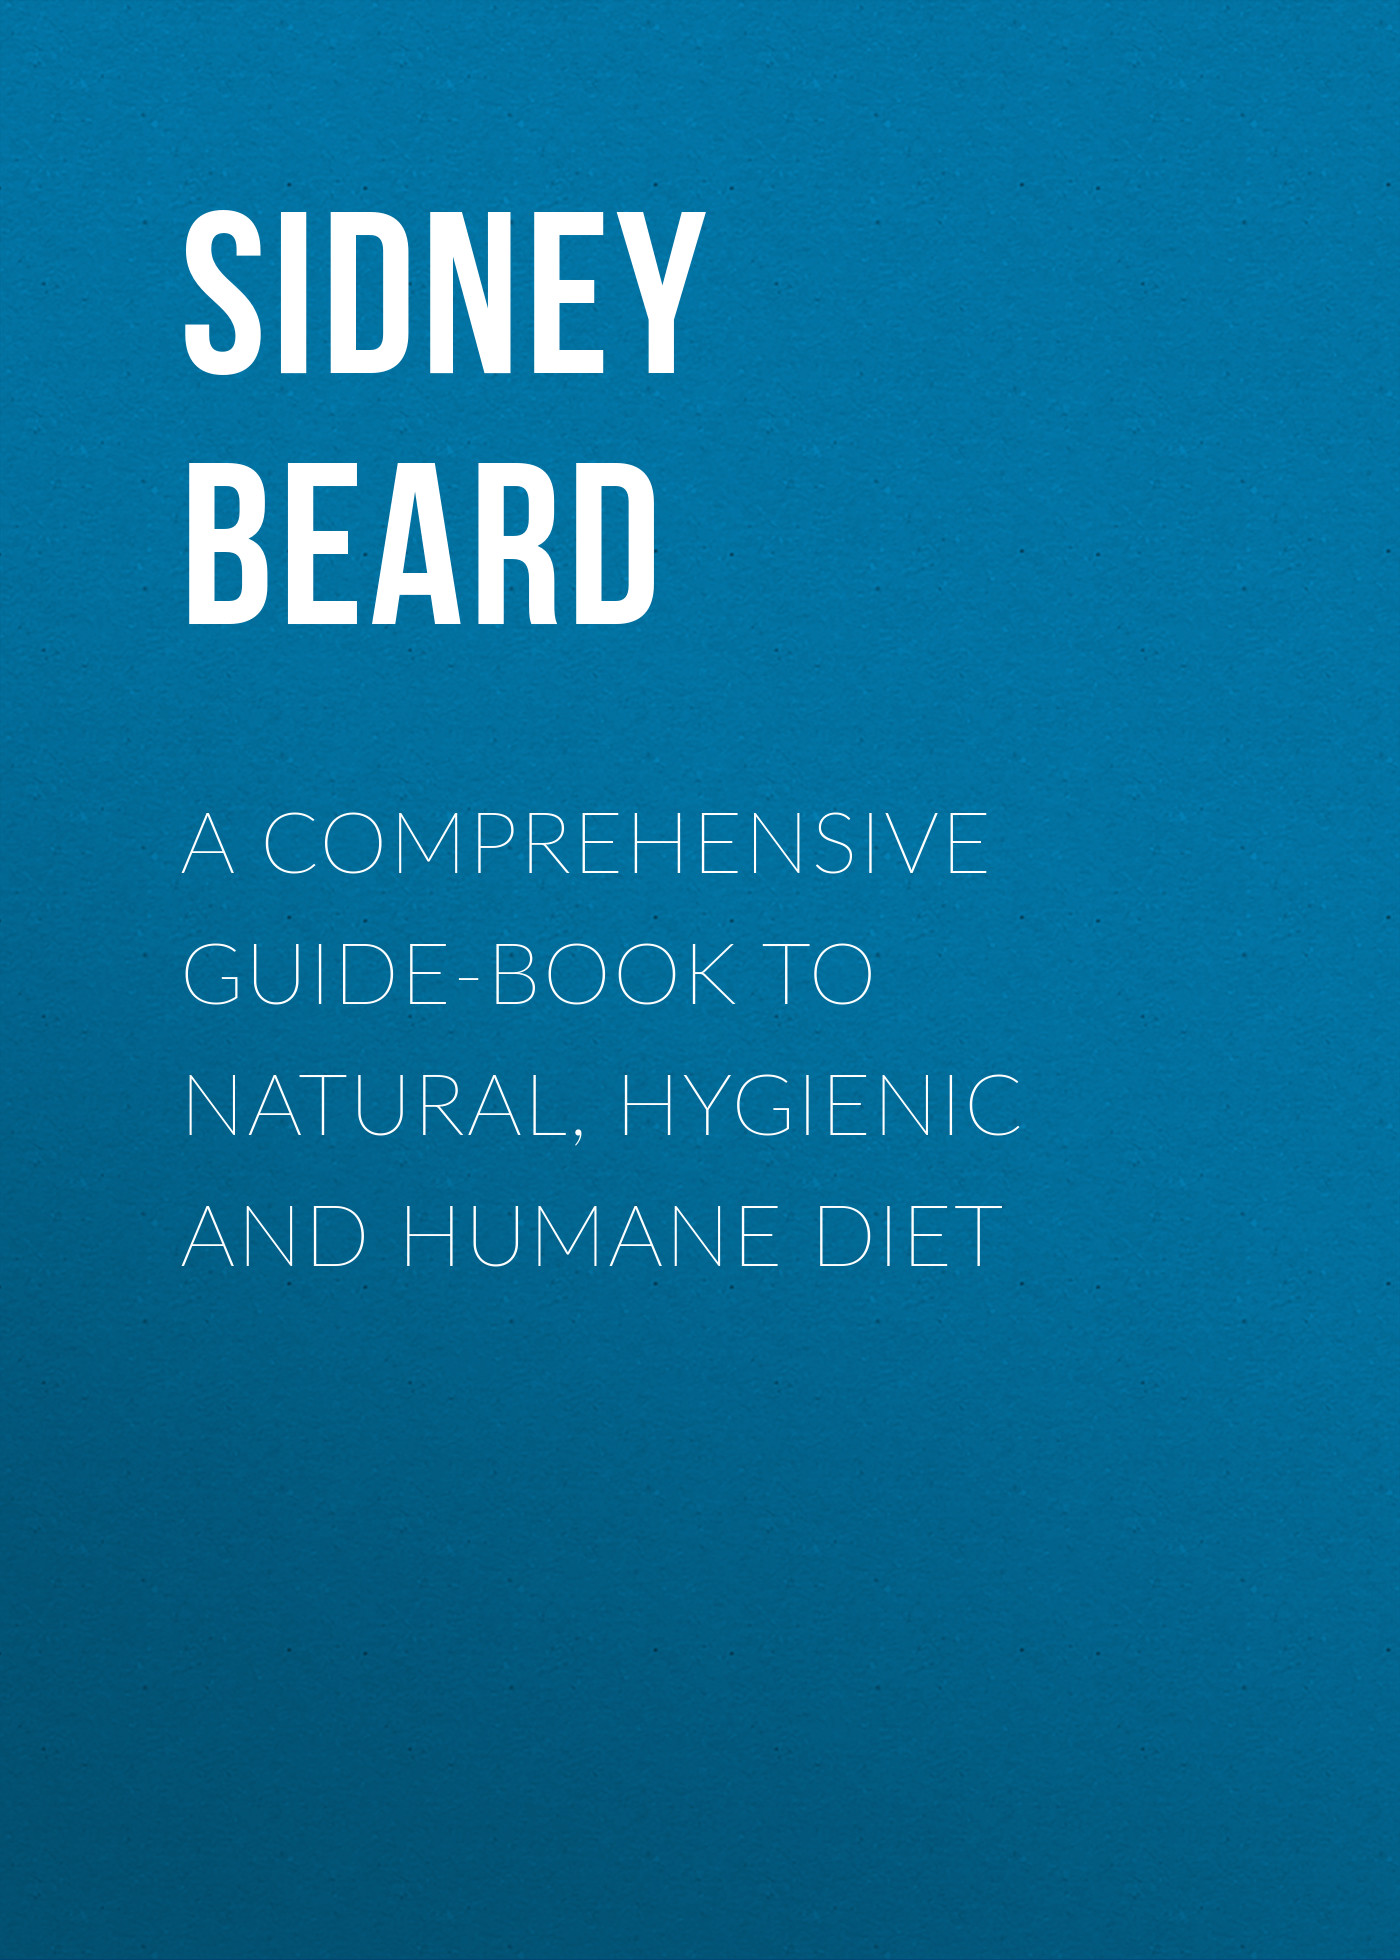 Beard Sidney Hartnoll A Comprehensive Guide-Book to Natural, Hygienic and Humane Diet a comprehensive guide to english comprehension and summary